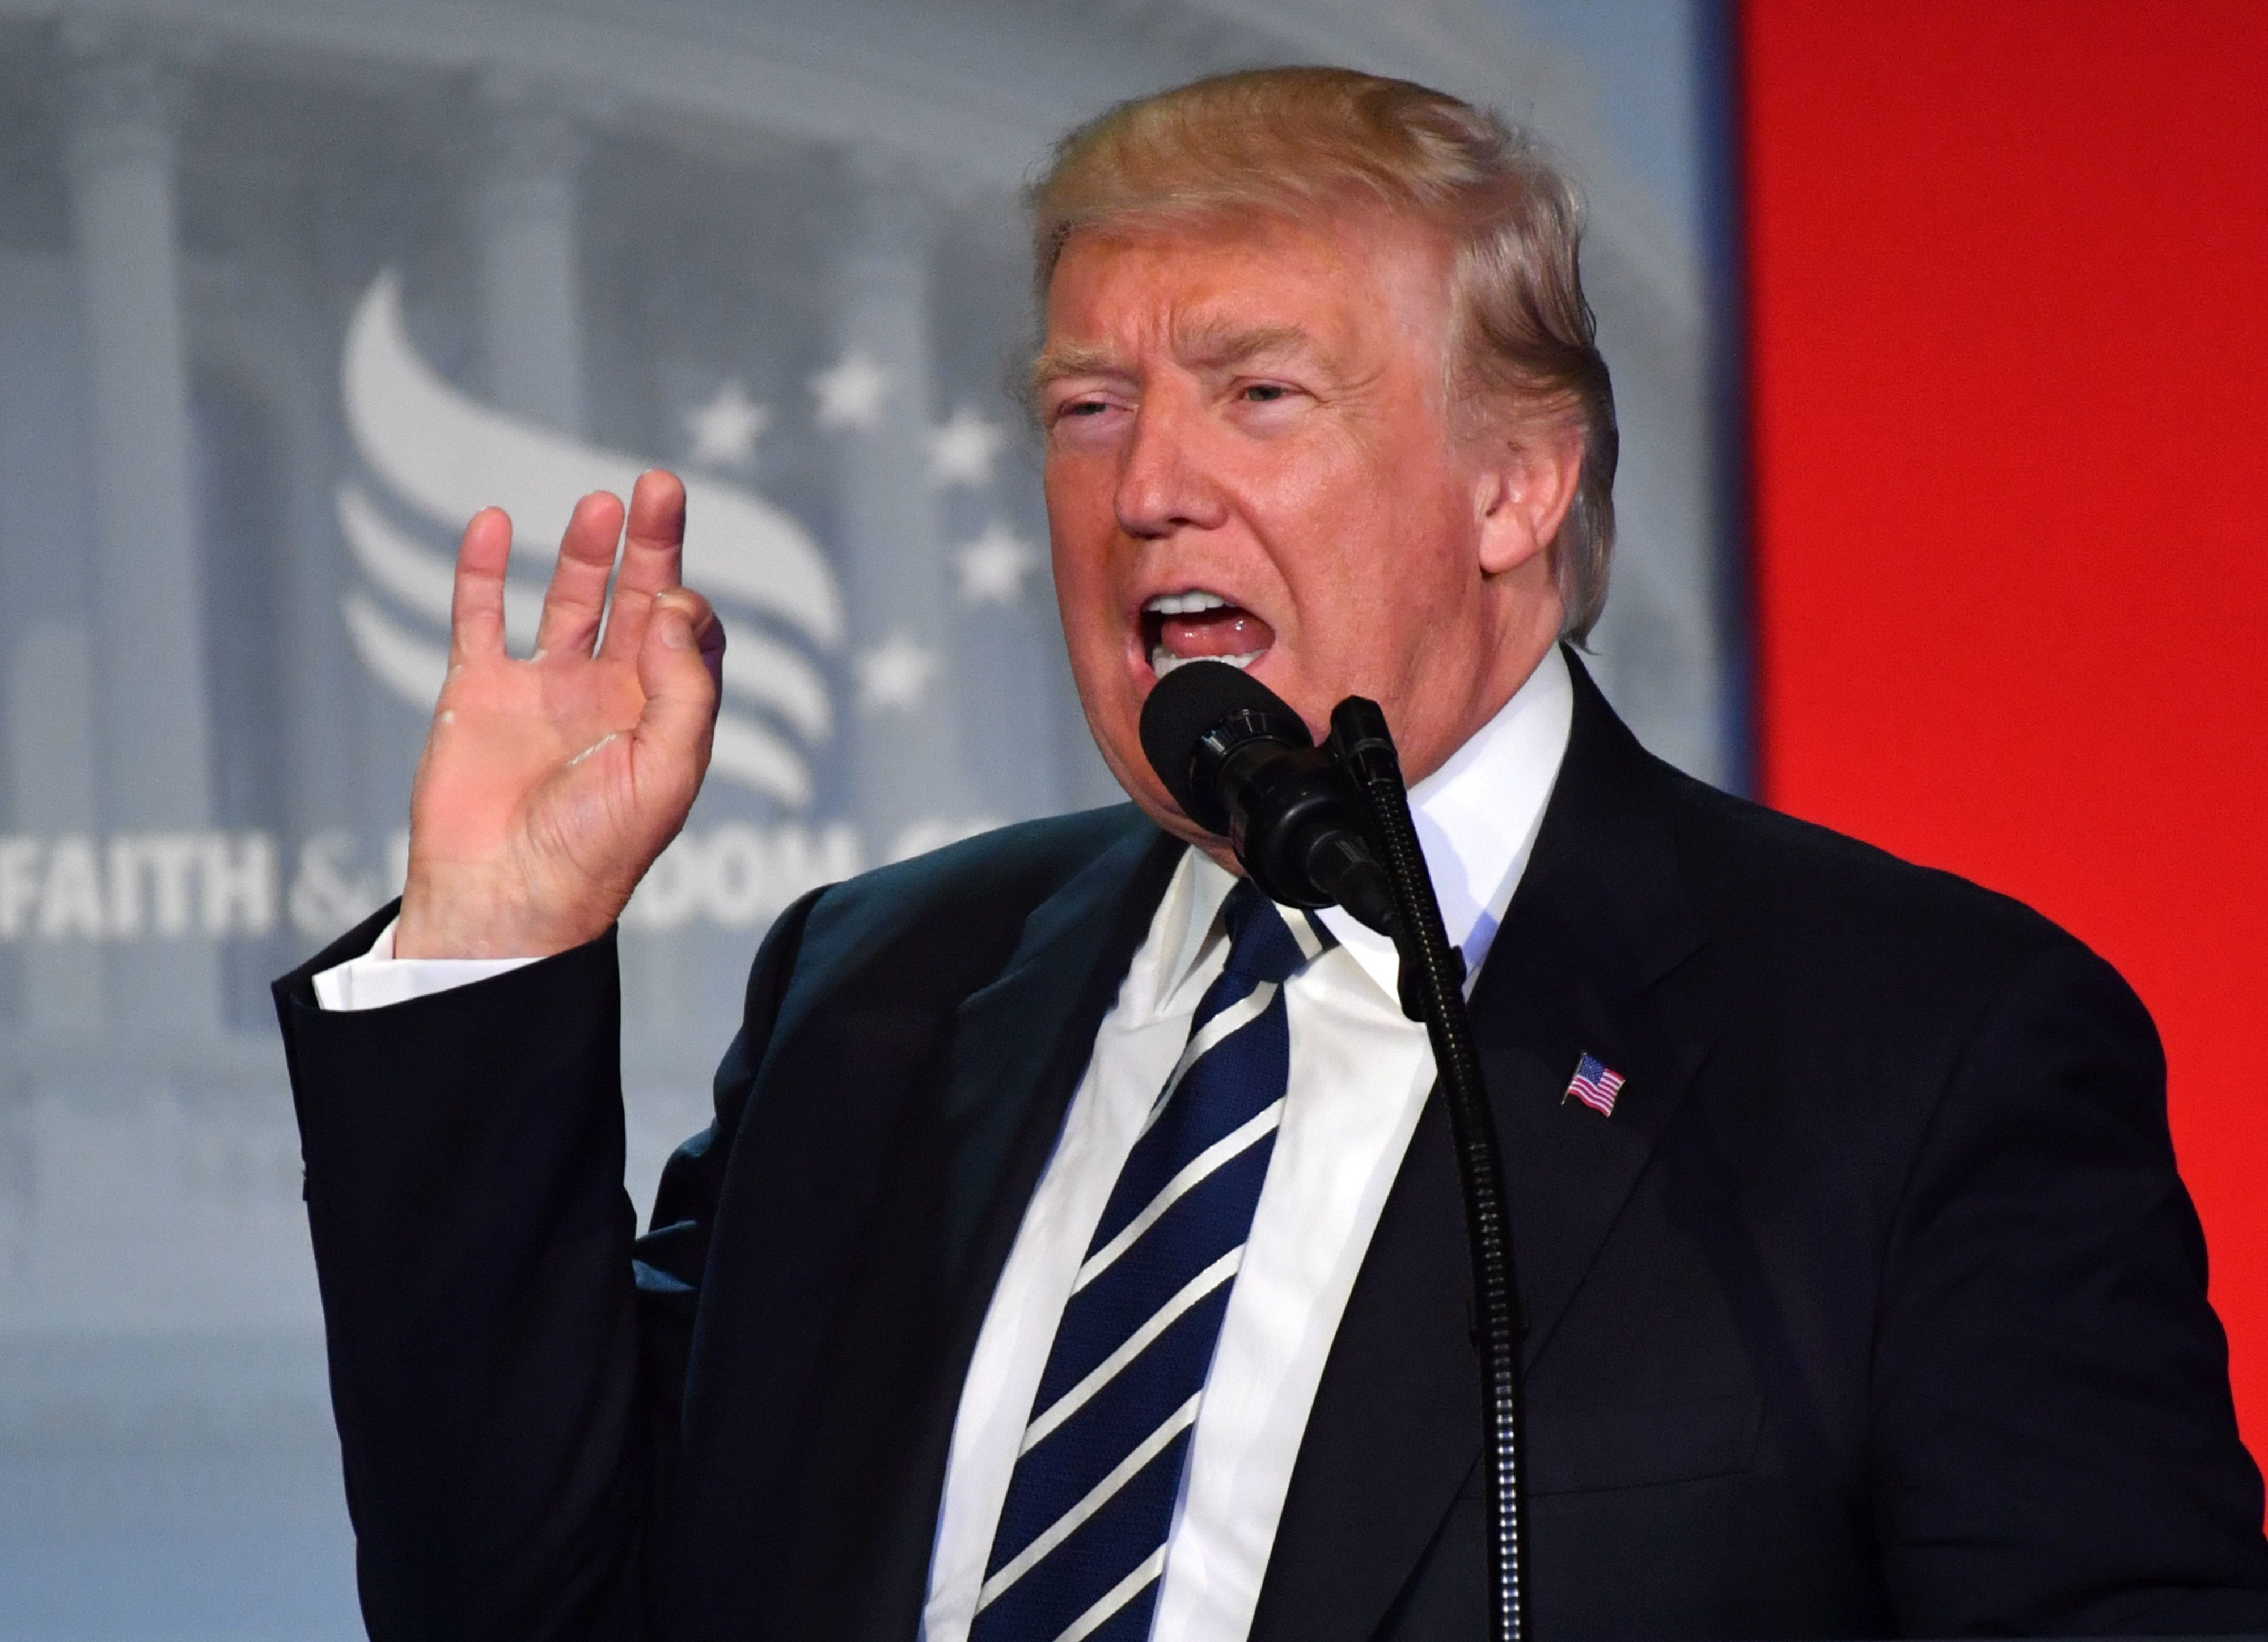 US President Donald Trump addresses supporters at a Faith and Freedom Coalition event in Washington DC on June 08, 2017. President Donald Trump avoided directly responding to explosive accusations made by his ex-FBI director Thursday, but sought to rally supporters behind a message of defiance. 'We are going to fight and win' Trump said, addressing supporters at a Faith and Freedom Coalition event in the capital.  / AFP PHOTO / Nicholas Kamm        (Photo credit should read NICHOLAS KAMM/AFP/Getty Images)